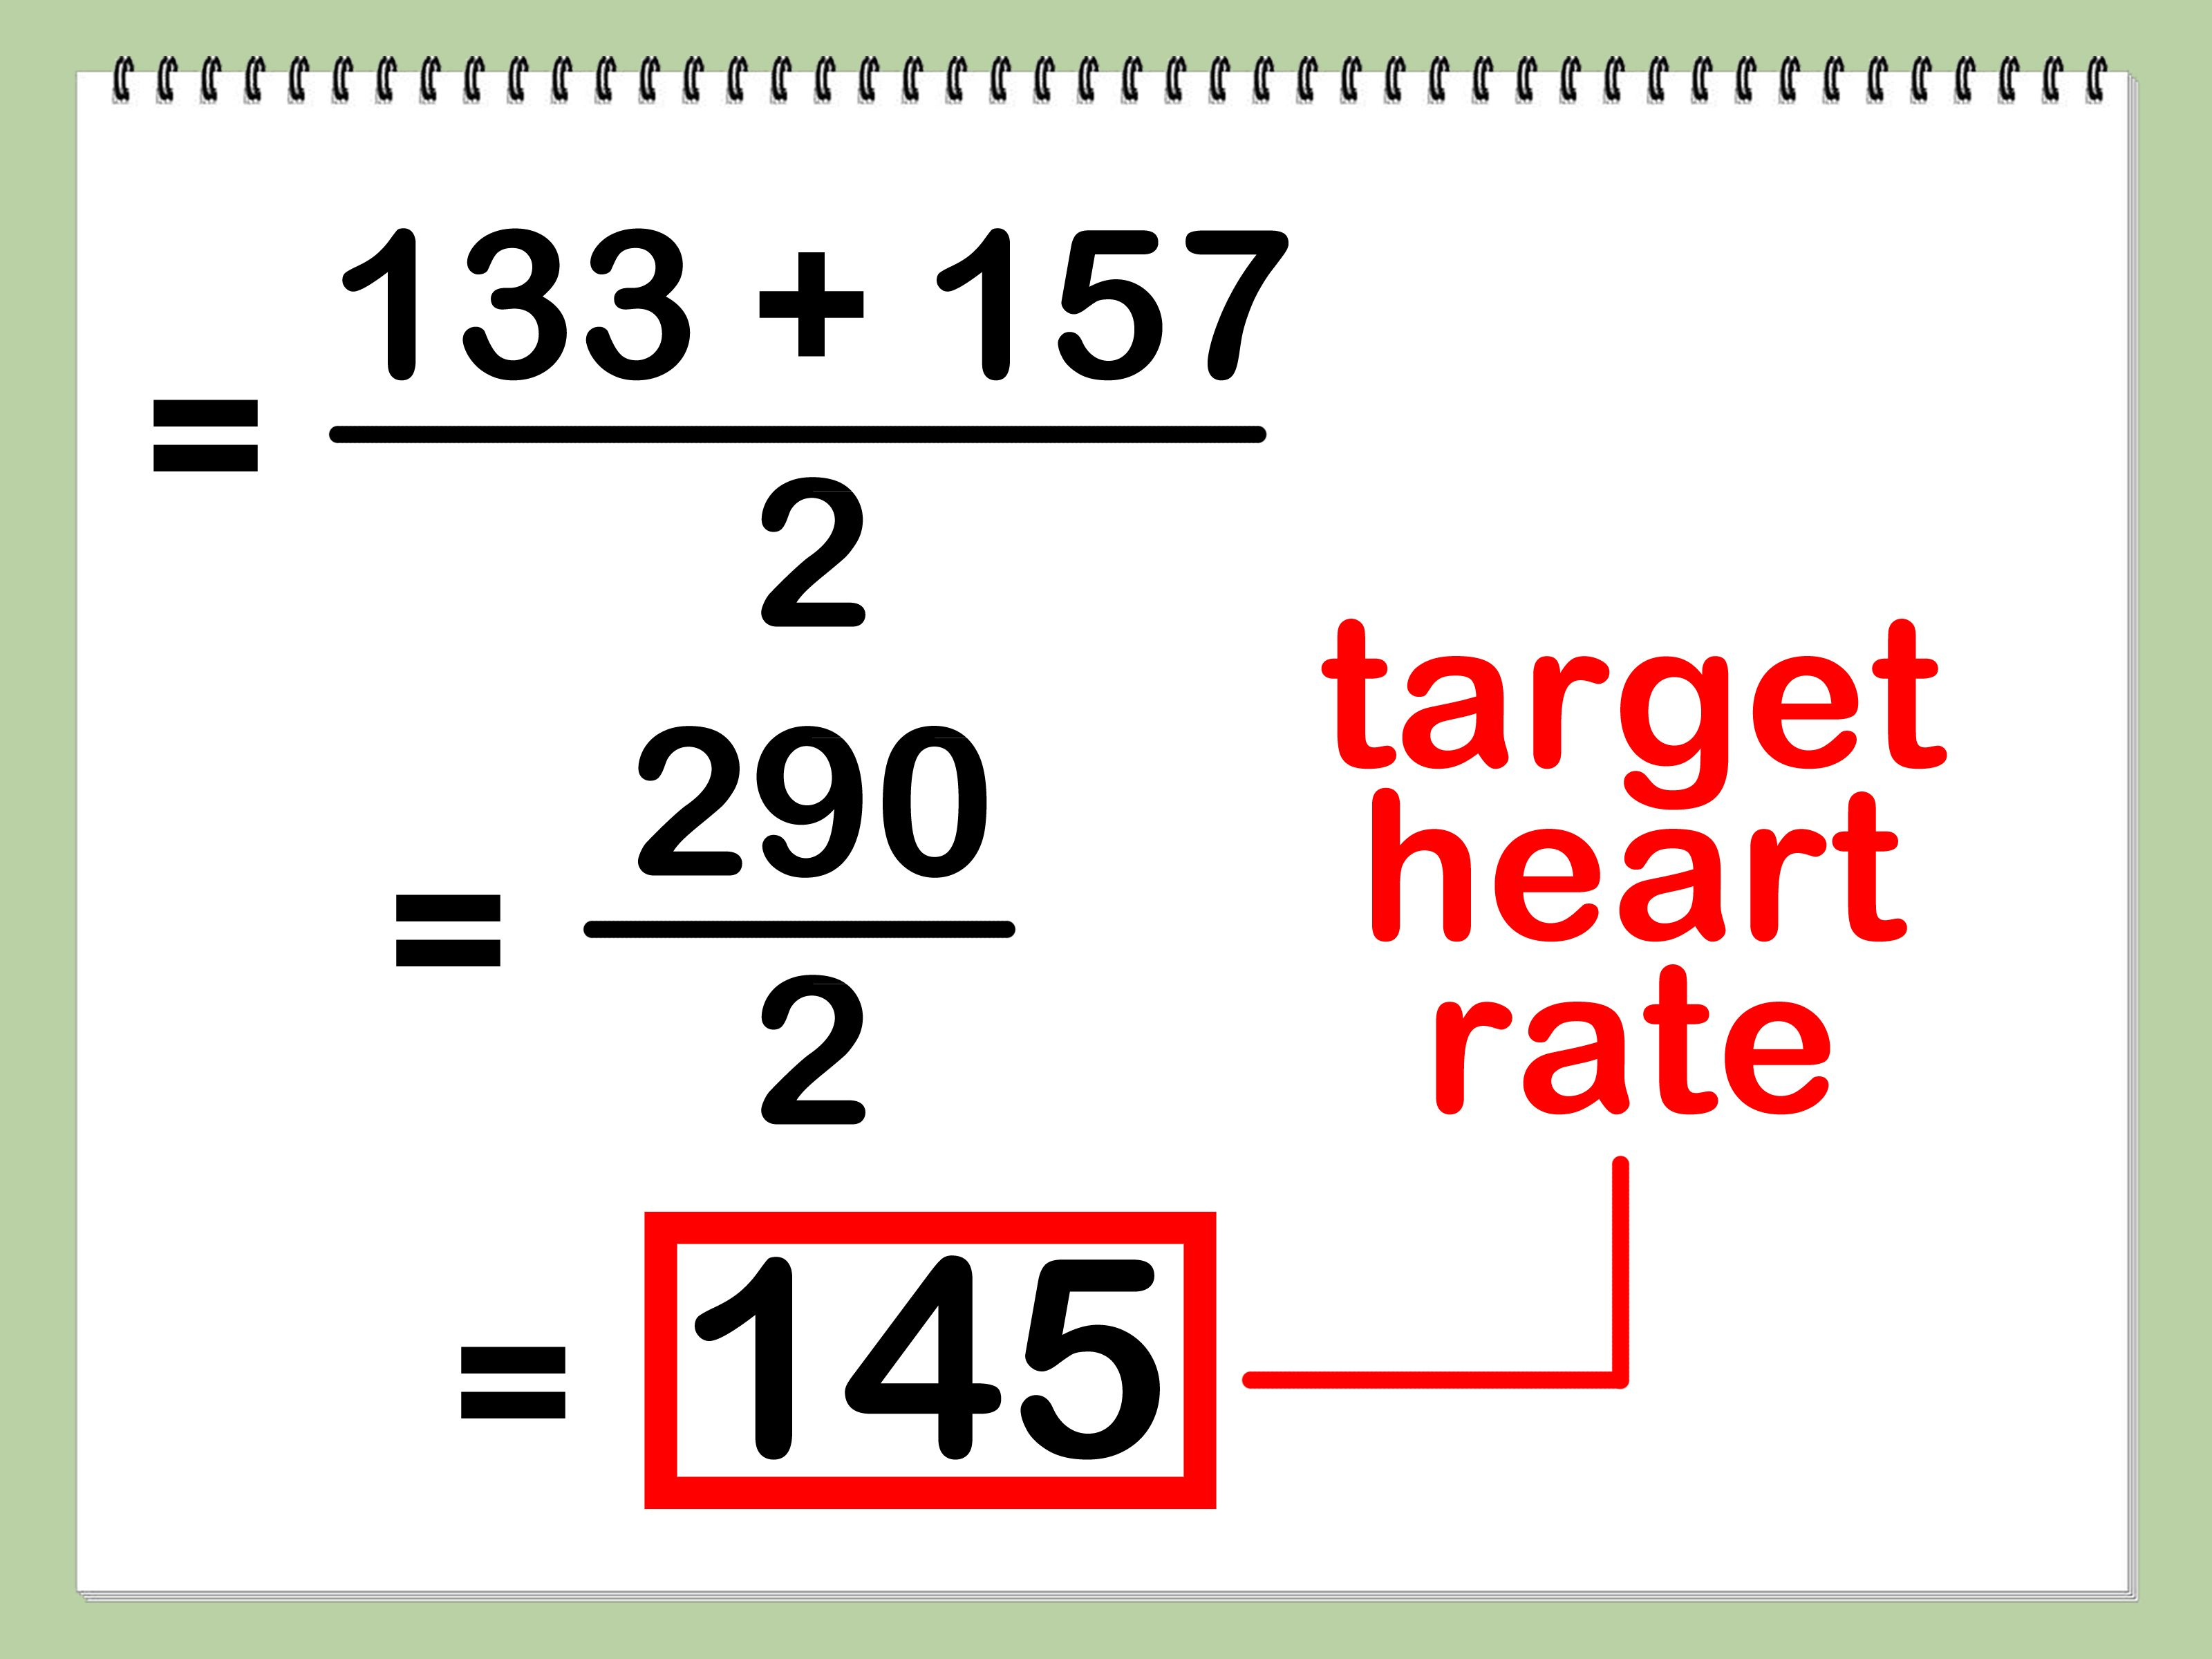 Calculate your target heart rate heart rate target and cardio how to calculate your target heart rate via wikihow geenschuldenfo Image collections